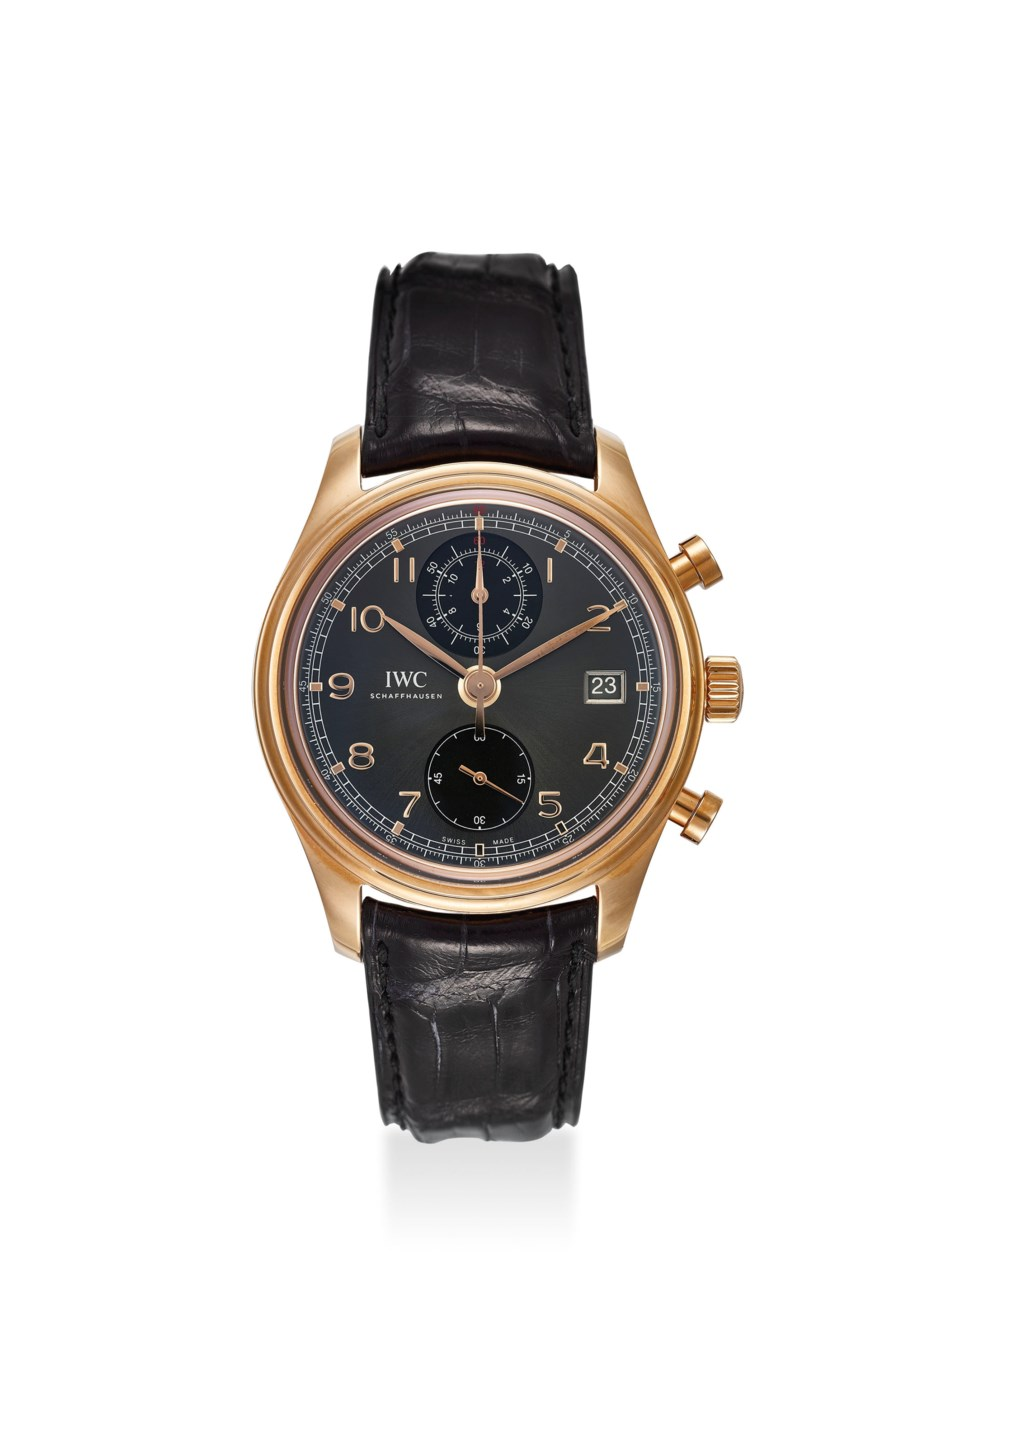 IWC. AN EXTREMELY FINE 18K ROSE GOLD CHRONOGRAPH AUTOMATIC WRISTWATCH WITH DATE, ORIGINAL CERTIFICATE AND BOX